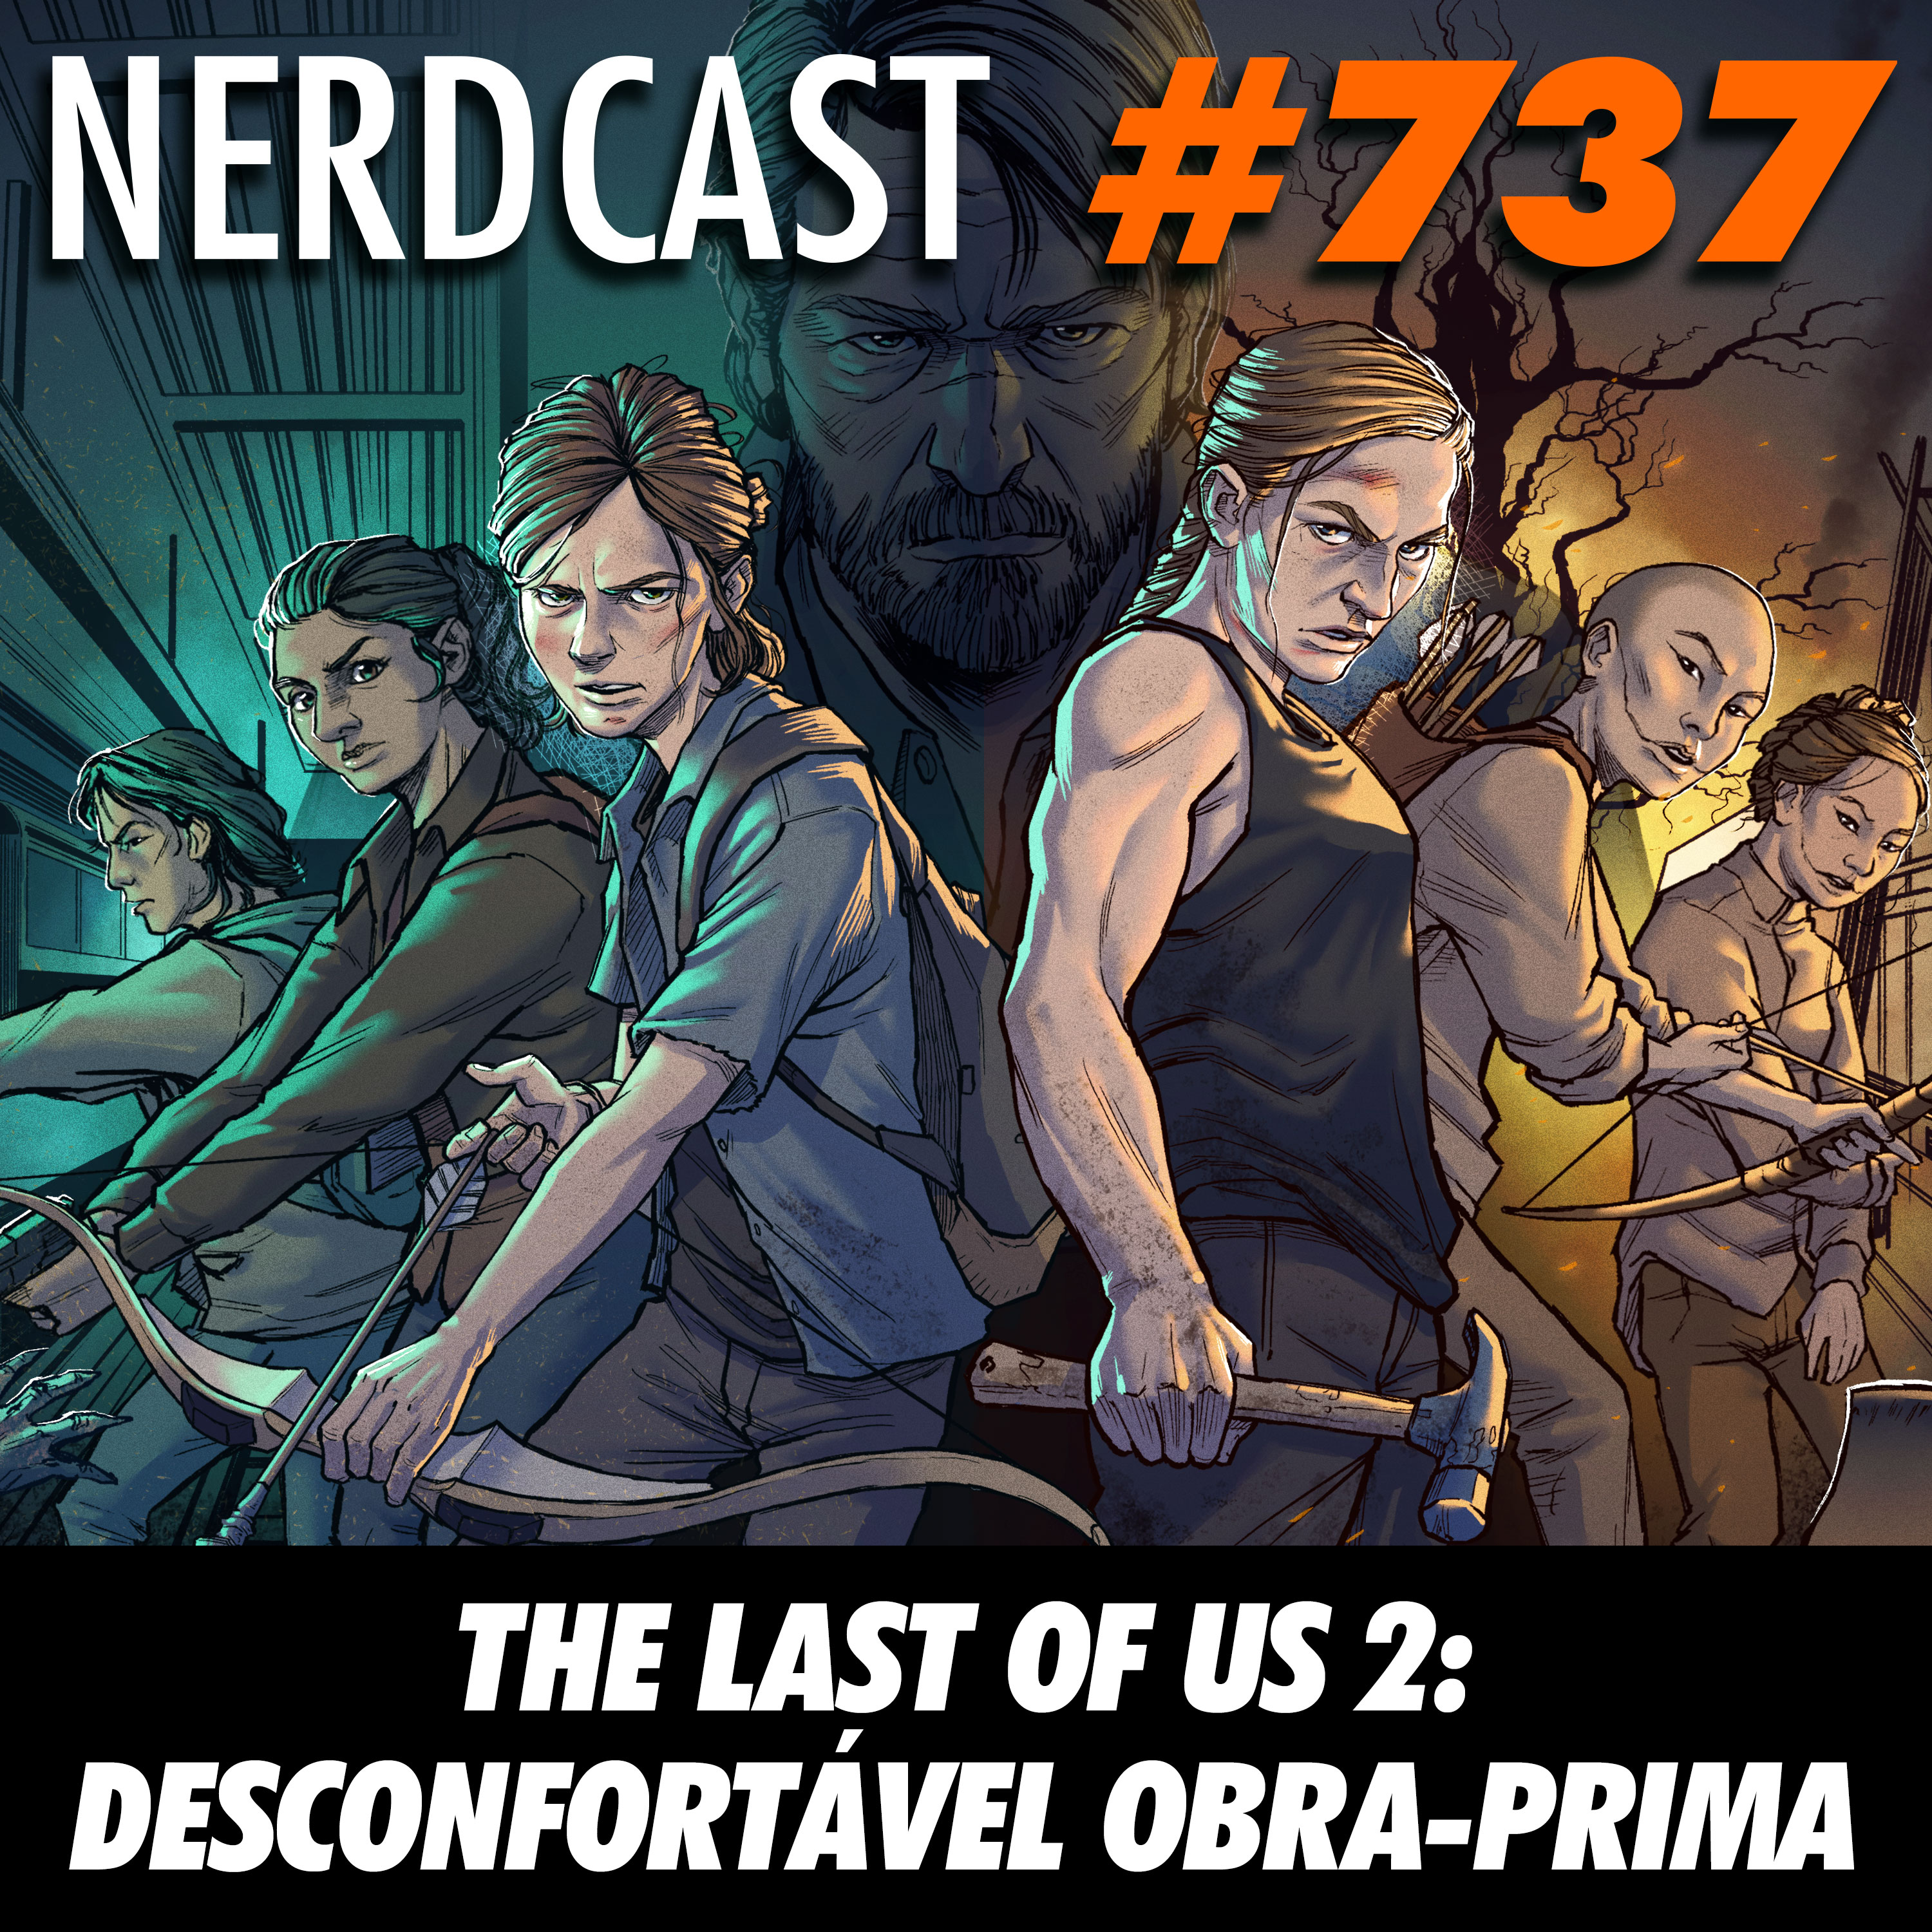 NerdCast 737 - The Last of Us 2 – Desconfortável obra-prima